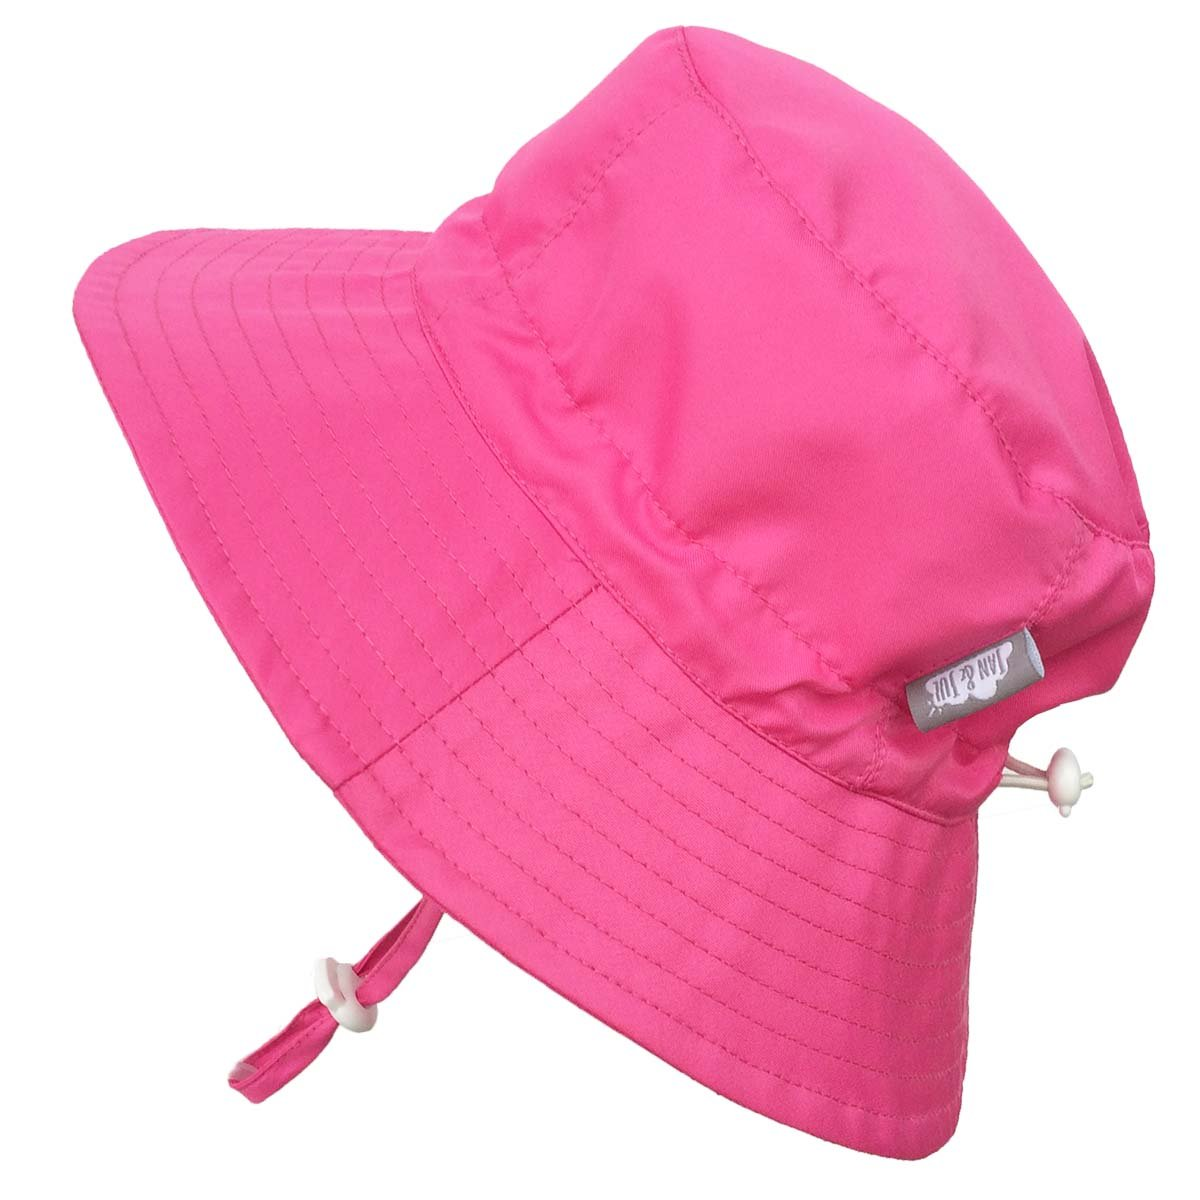 Kids 50+ UPF Bucket Sun Hat, Size Adjustable Aqua Dry(L: 15m - 5Y, Hot Pink ) 14-50L